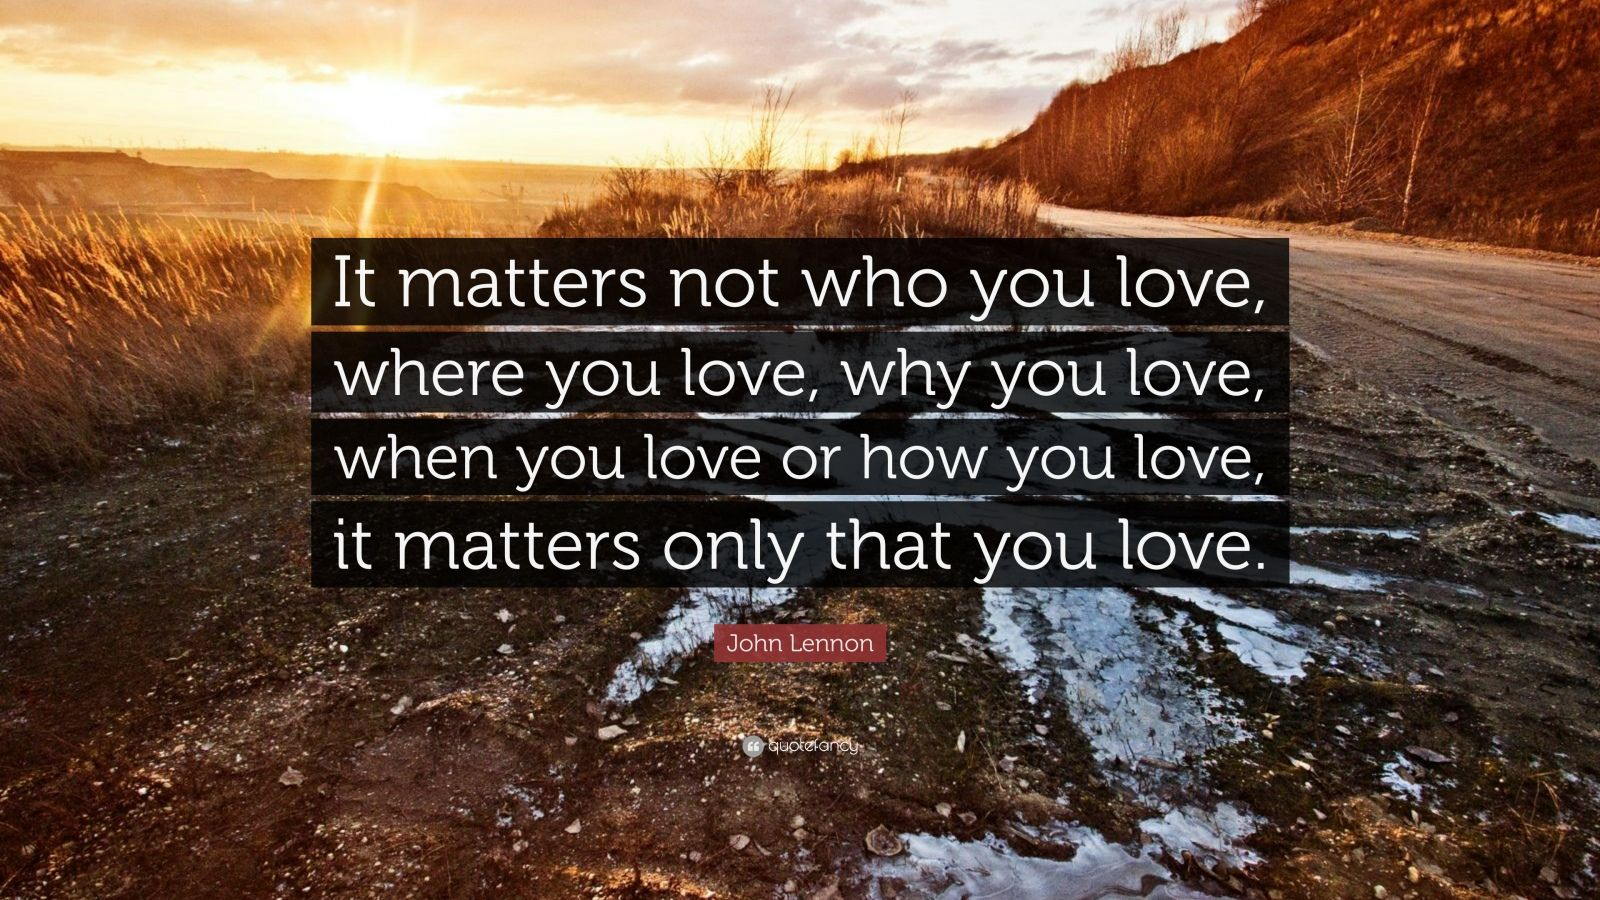 "John Lennon Quote: ""It matters not who you love, where you love, why you love, when you love or how you love, it matters only that you love."""